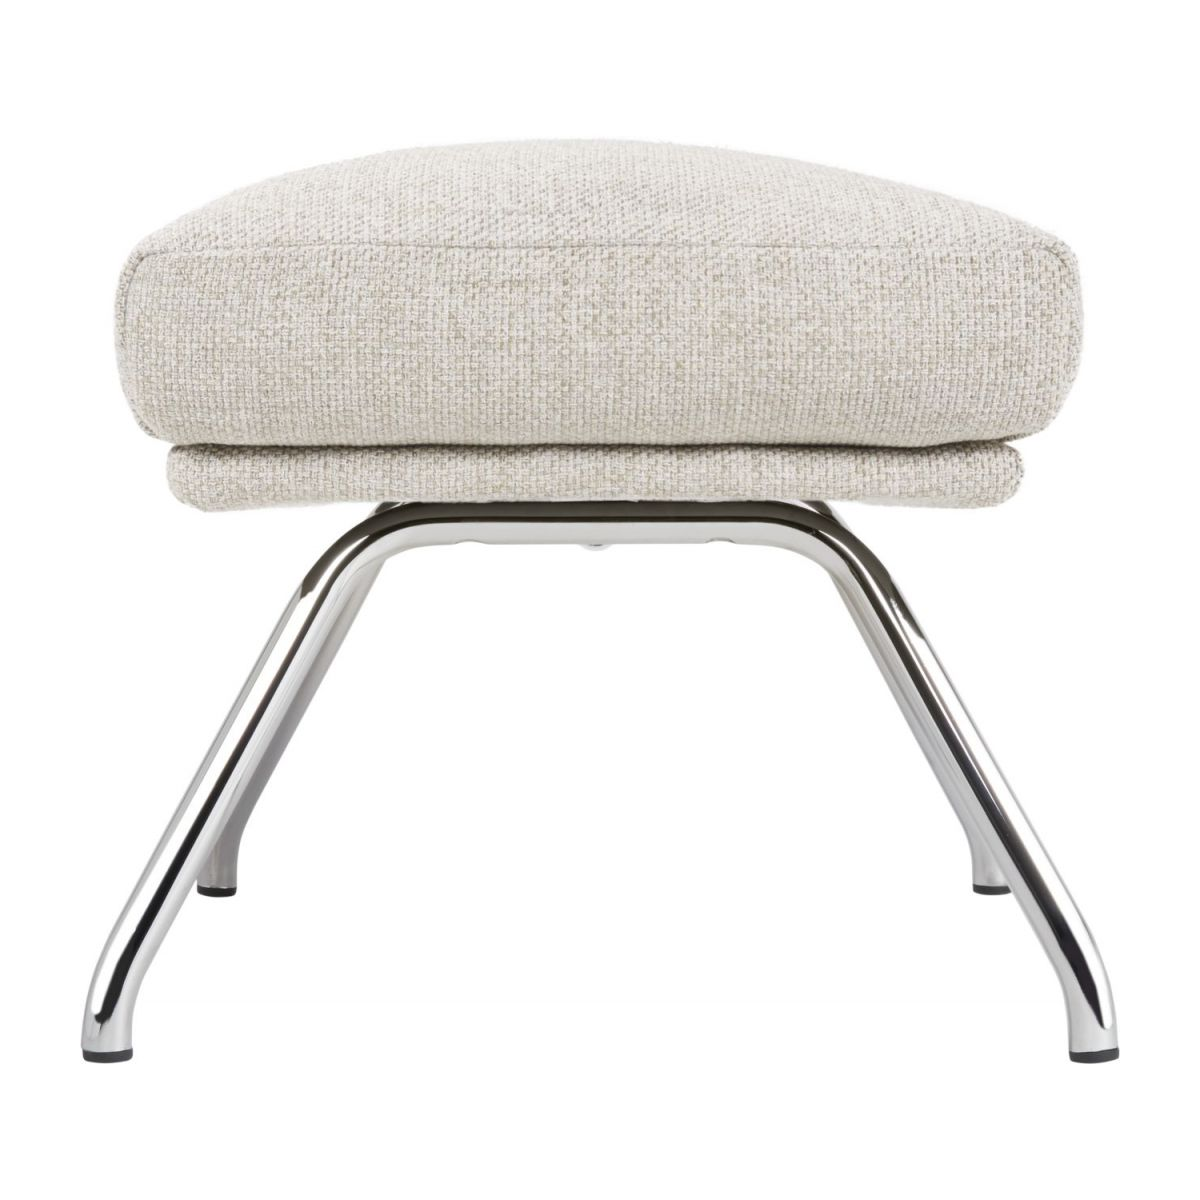 Footstool in Lecce fabric, nature with chromed metal legs n°3